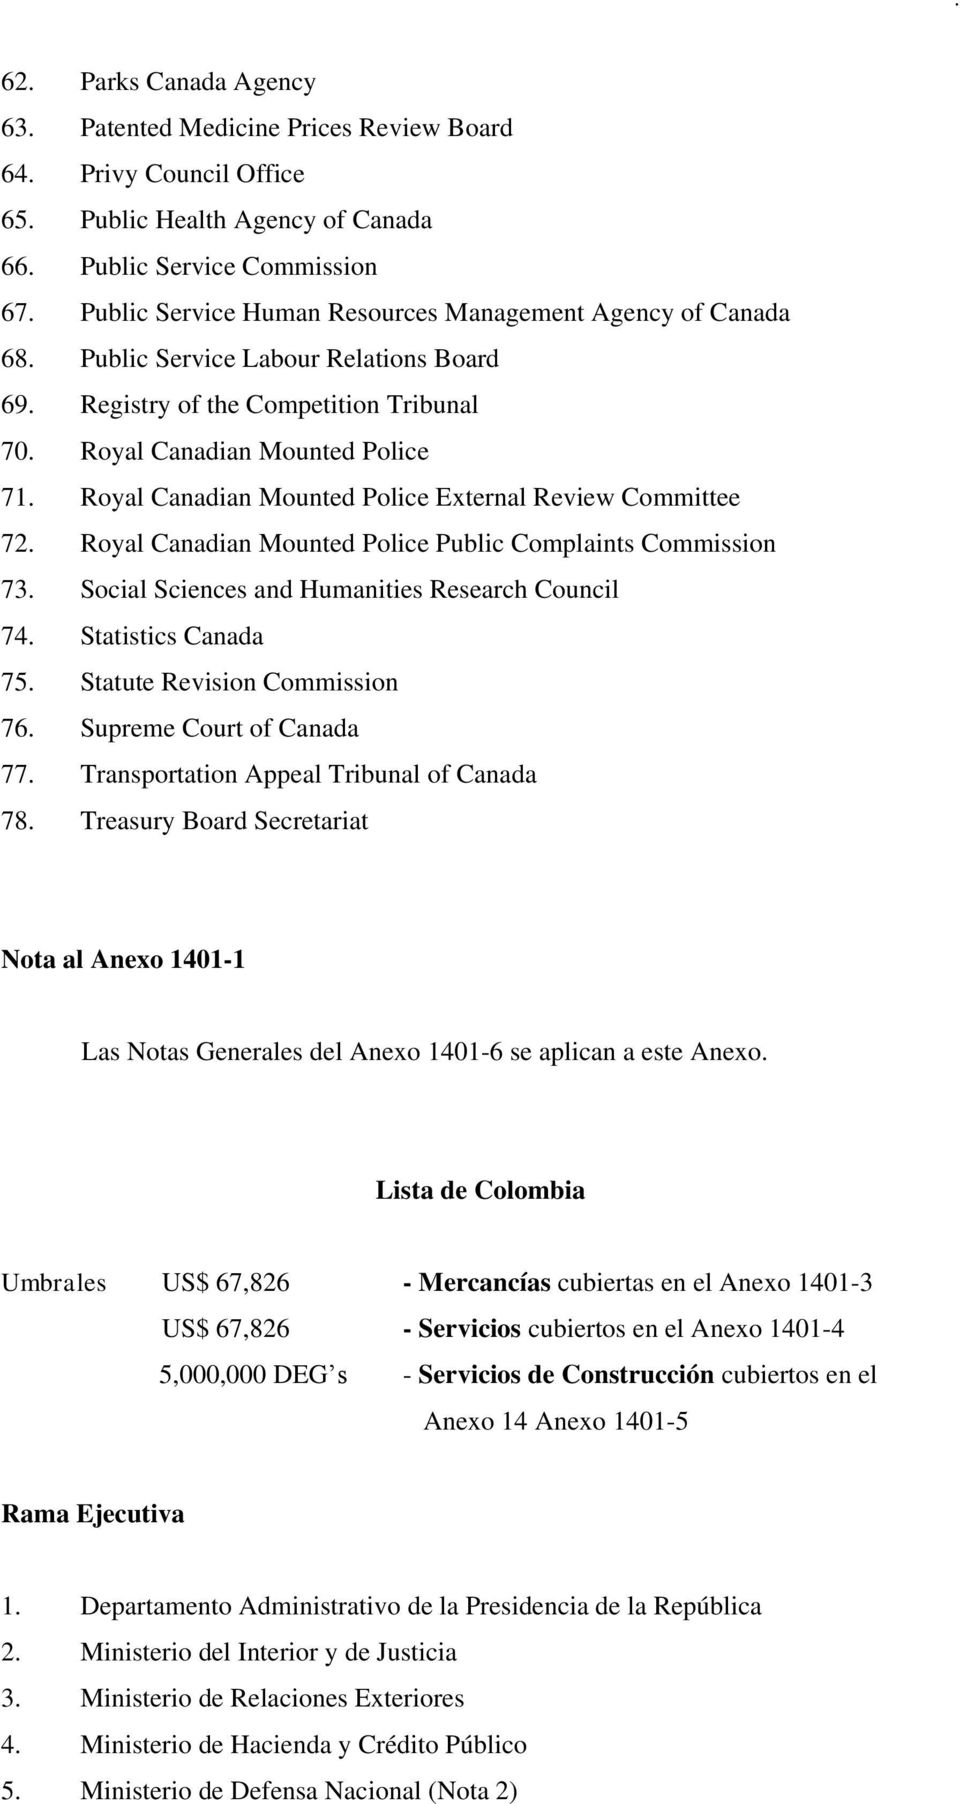 Royal Canadian Mounted Police External Review Committee 72. Royal Canadian Mounted Police Public Complaints Commission 73. Social Sciences and Humanities Research Council 74. Statistics Canada 75.